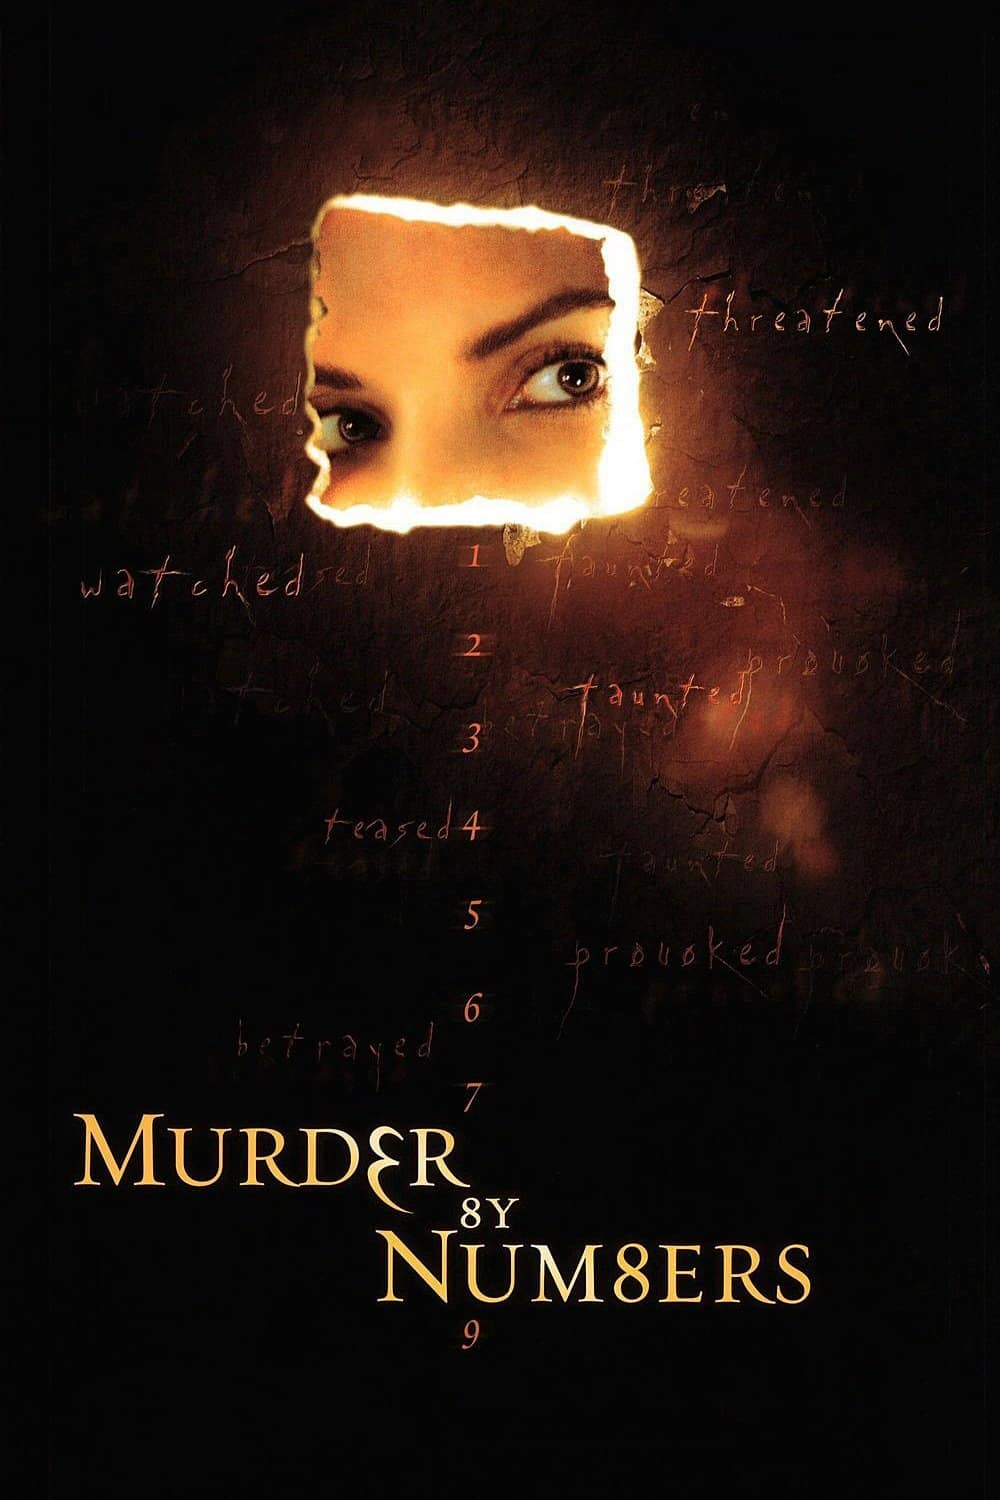 Murder by Numbers, 2002